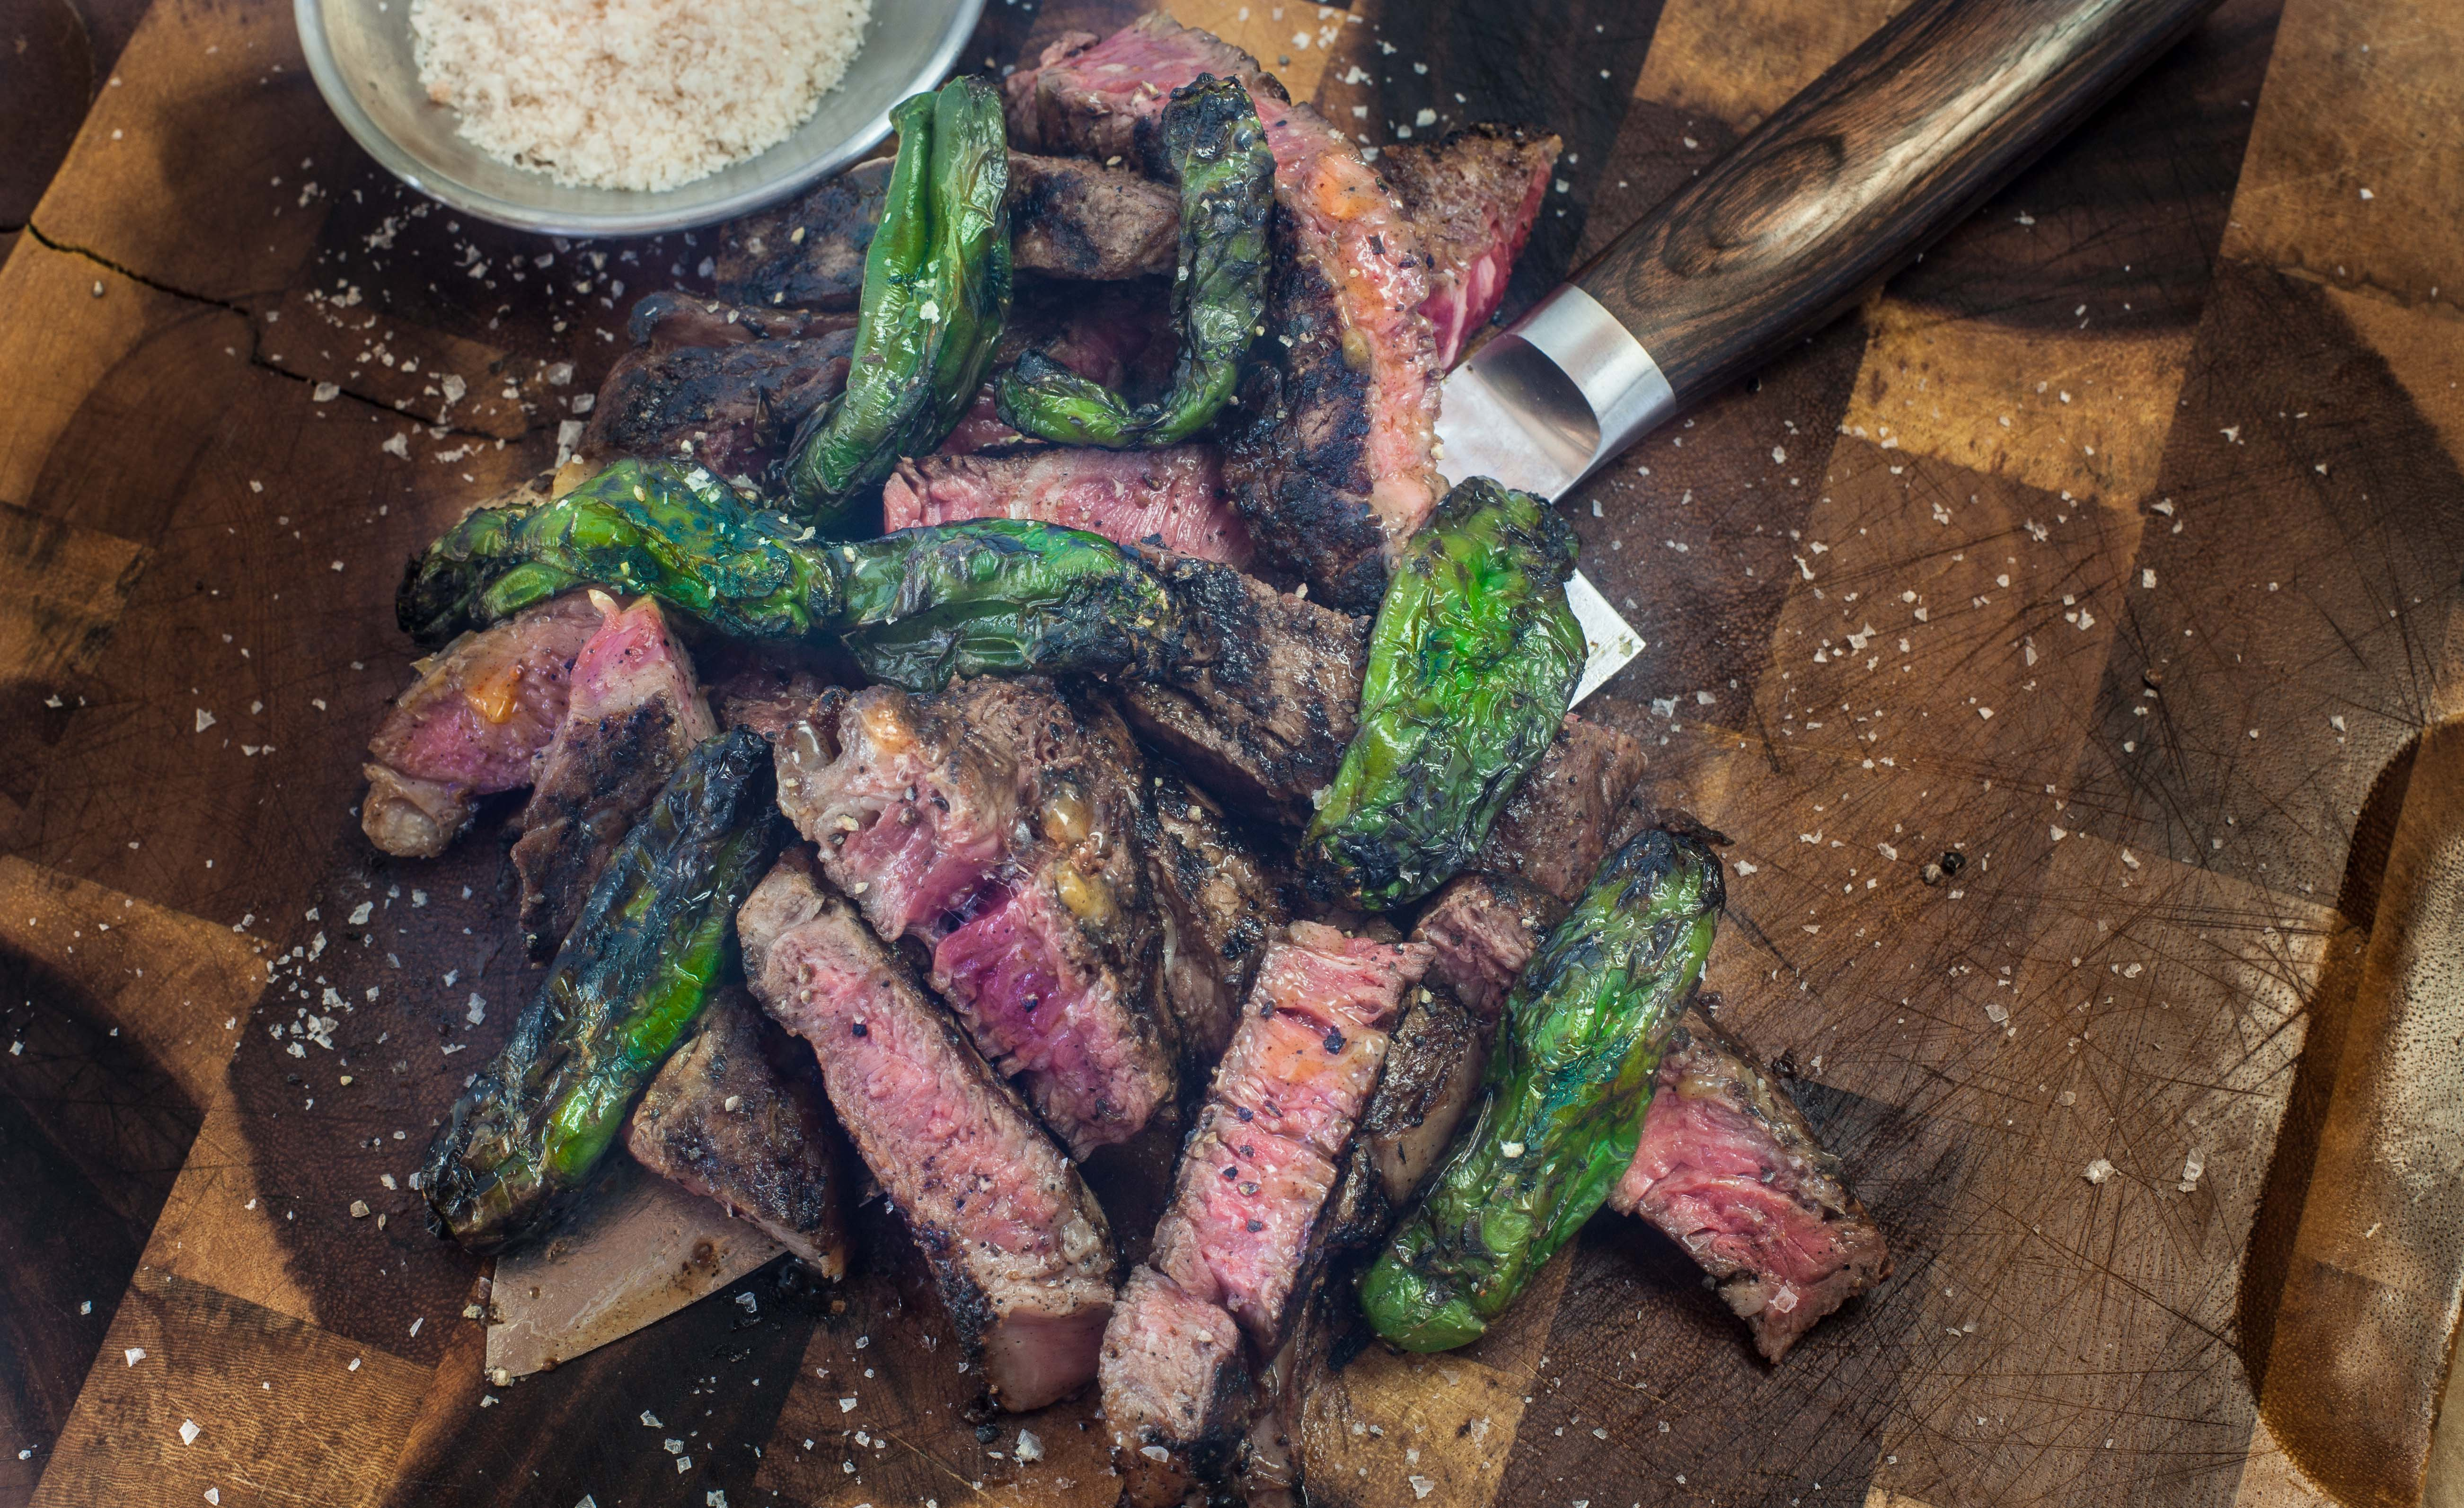 Ribeye Steak And Blistered Shishitos Fires And Inspires